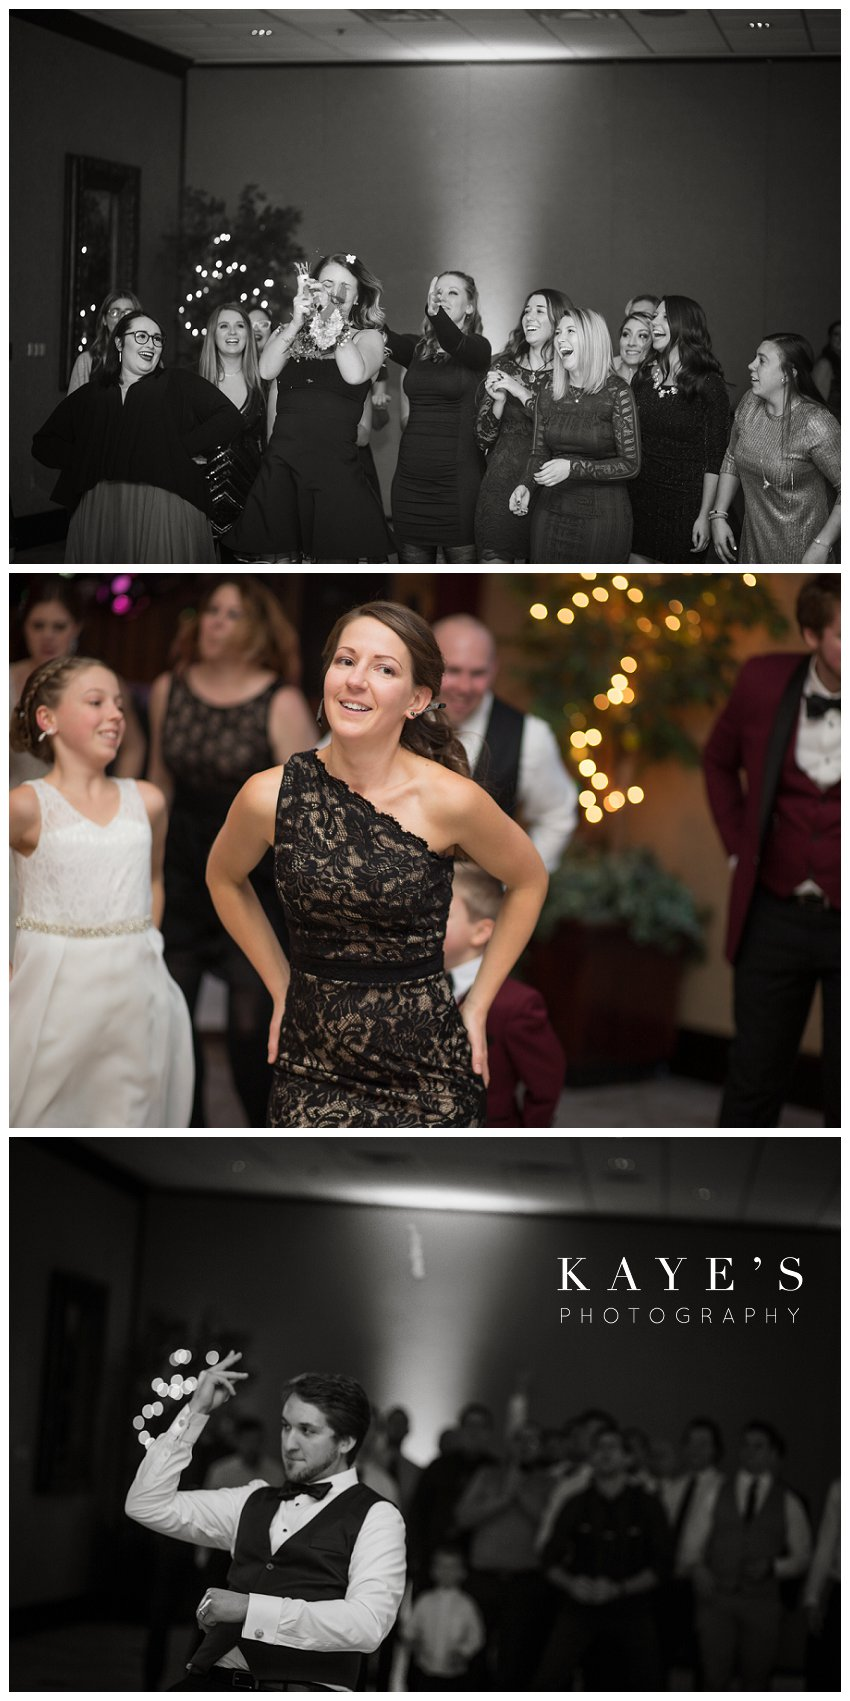 Kayes Photography- Crystal-gardens-wedding-photographer (1).jpg